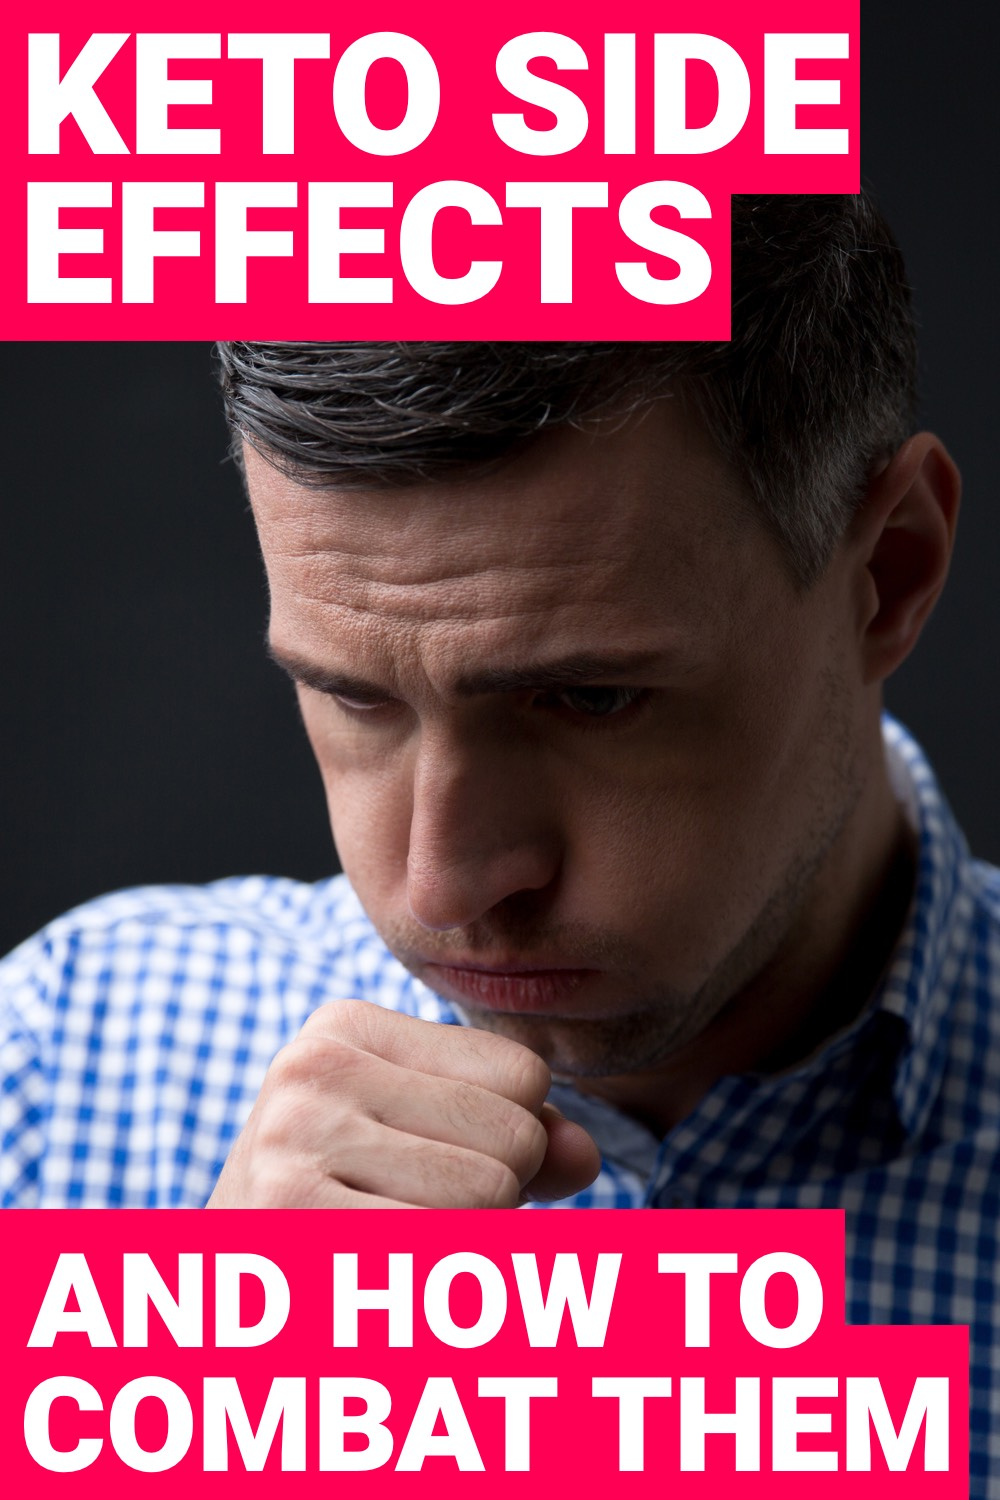 When you first start the ketogenic diet, your body will be going through a lot of changes. Because of this you should expect some side effect. Here are some keto side effects and how you can combat them.